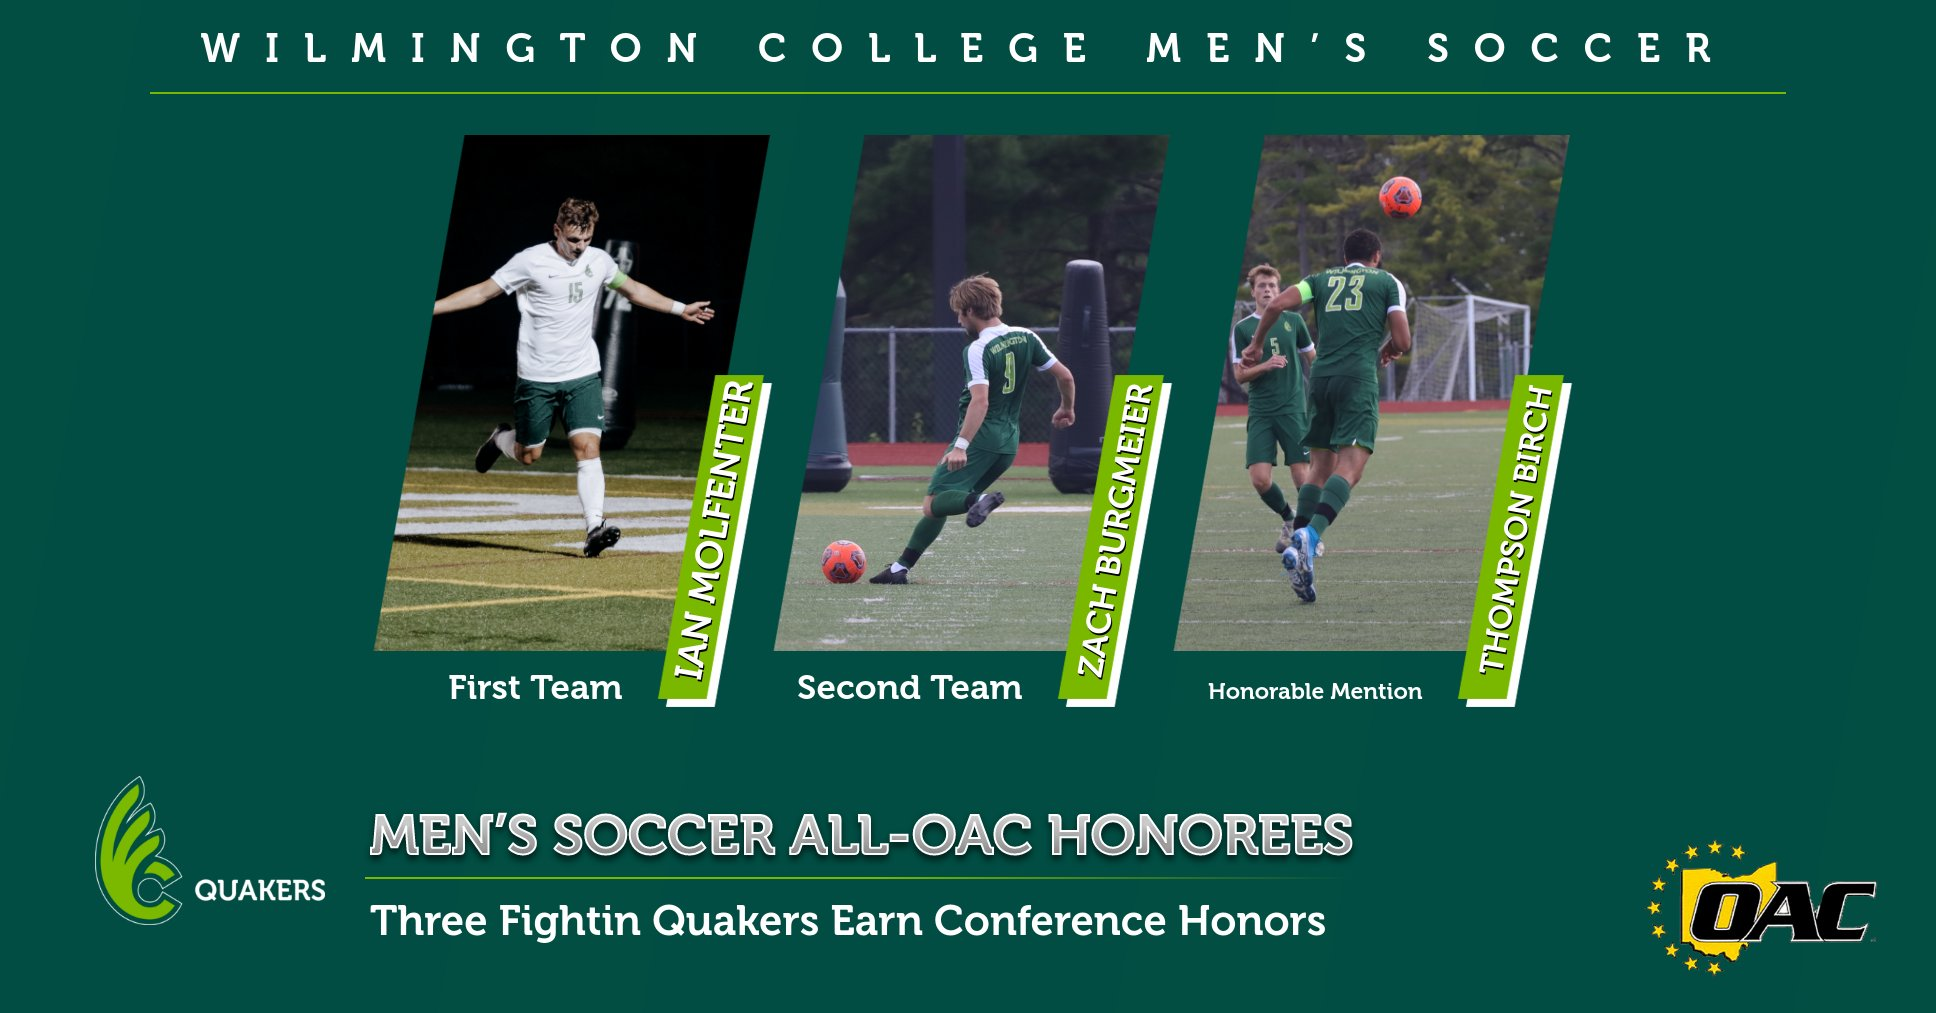 Molfenter, Burgmeier and Birch Earn All-OAC Honors